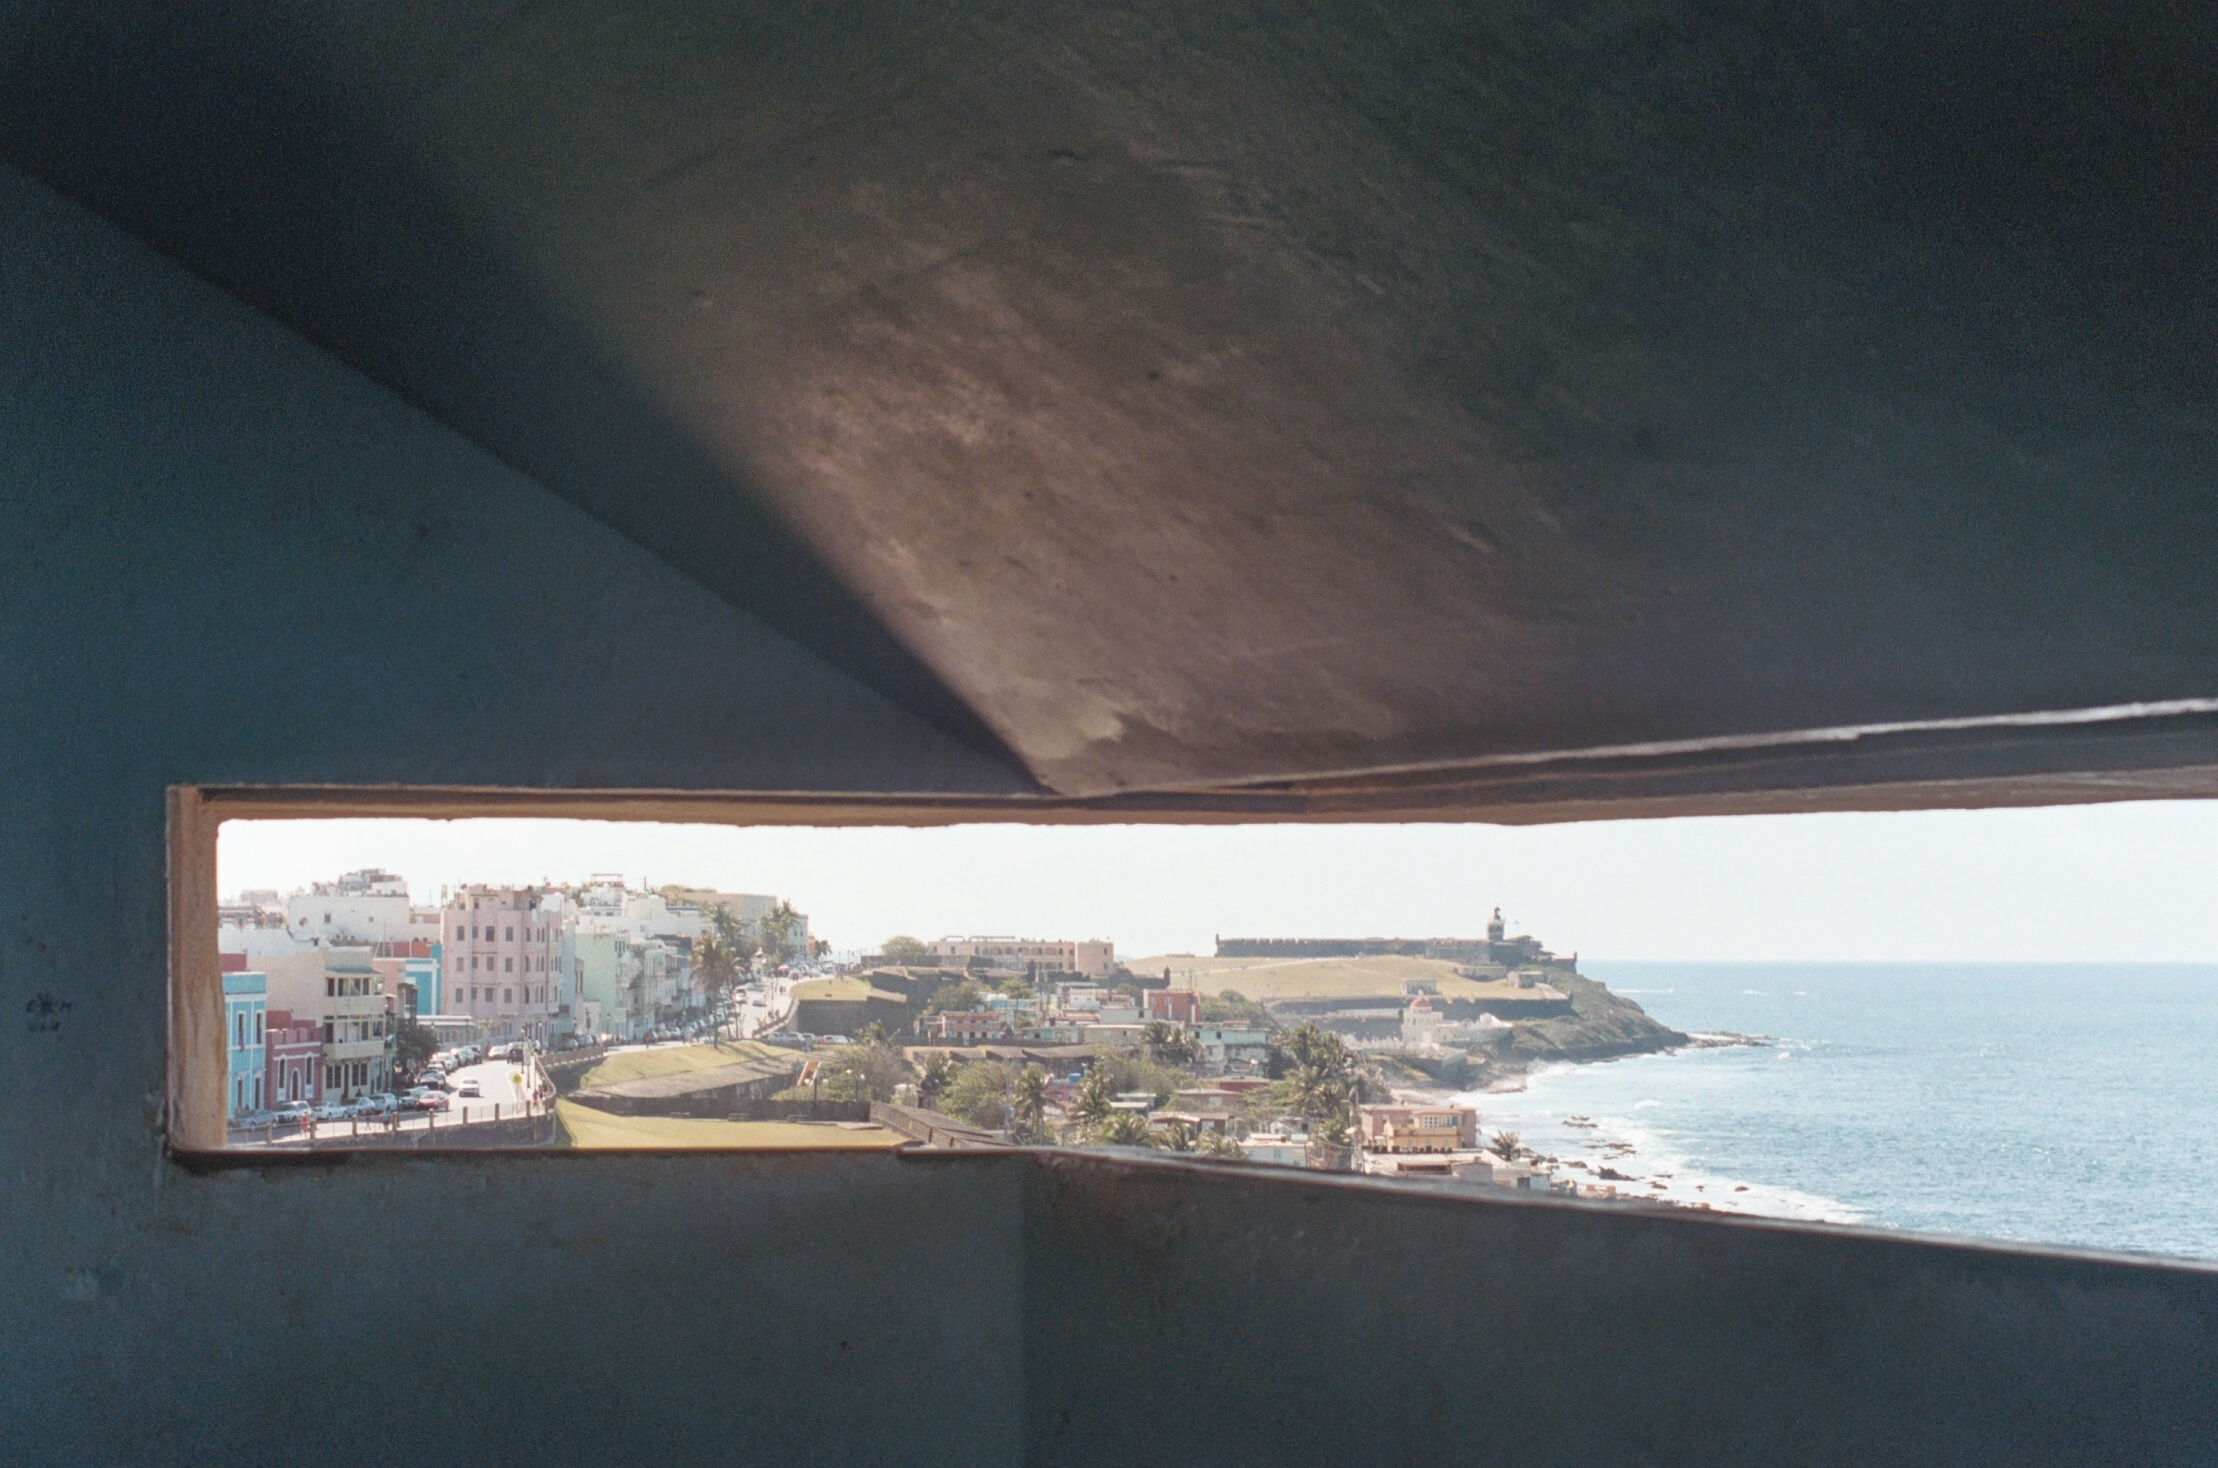 View from Inside Puerto Rico